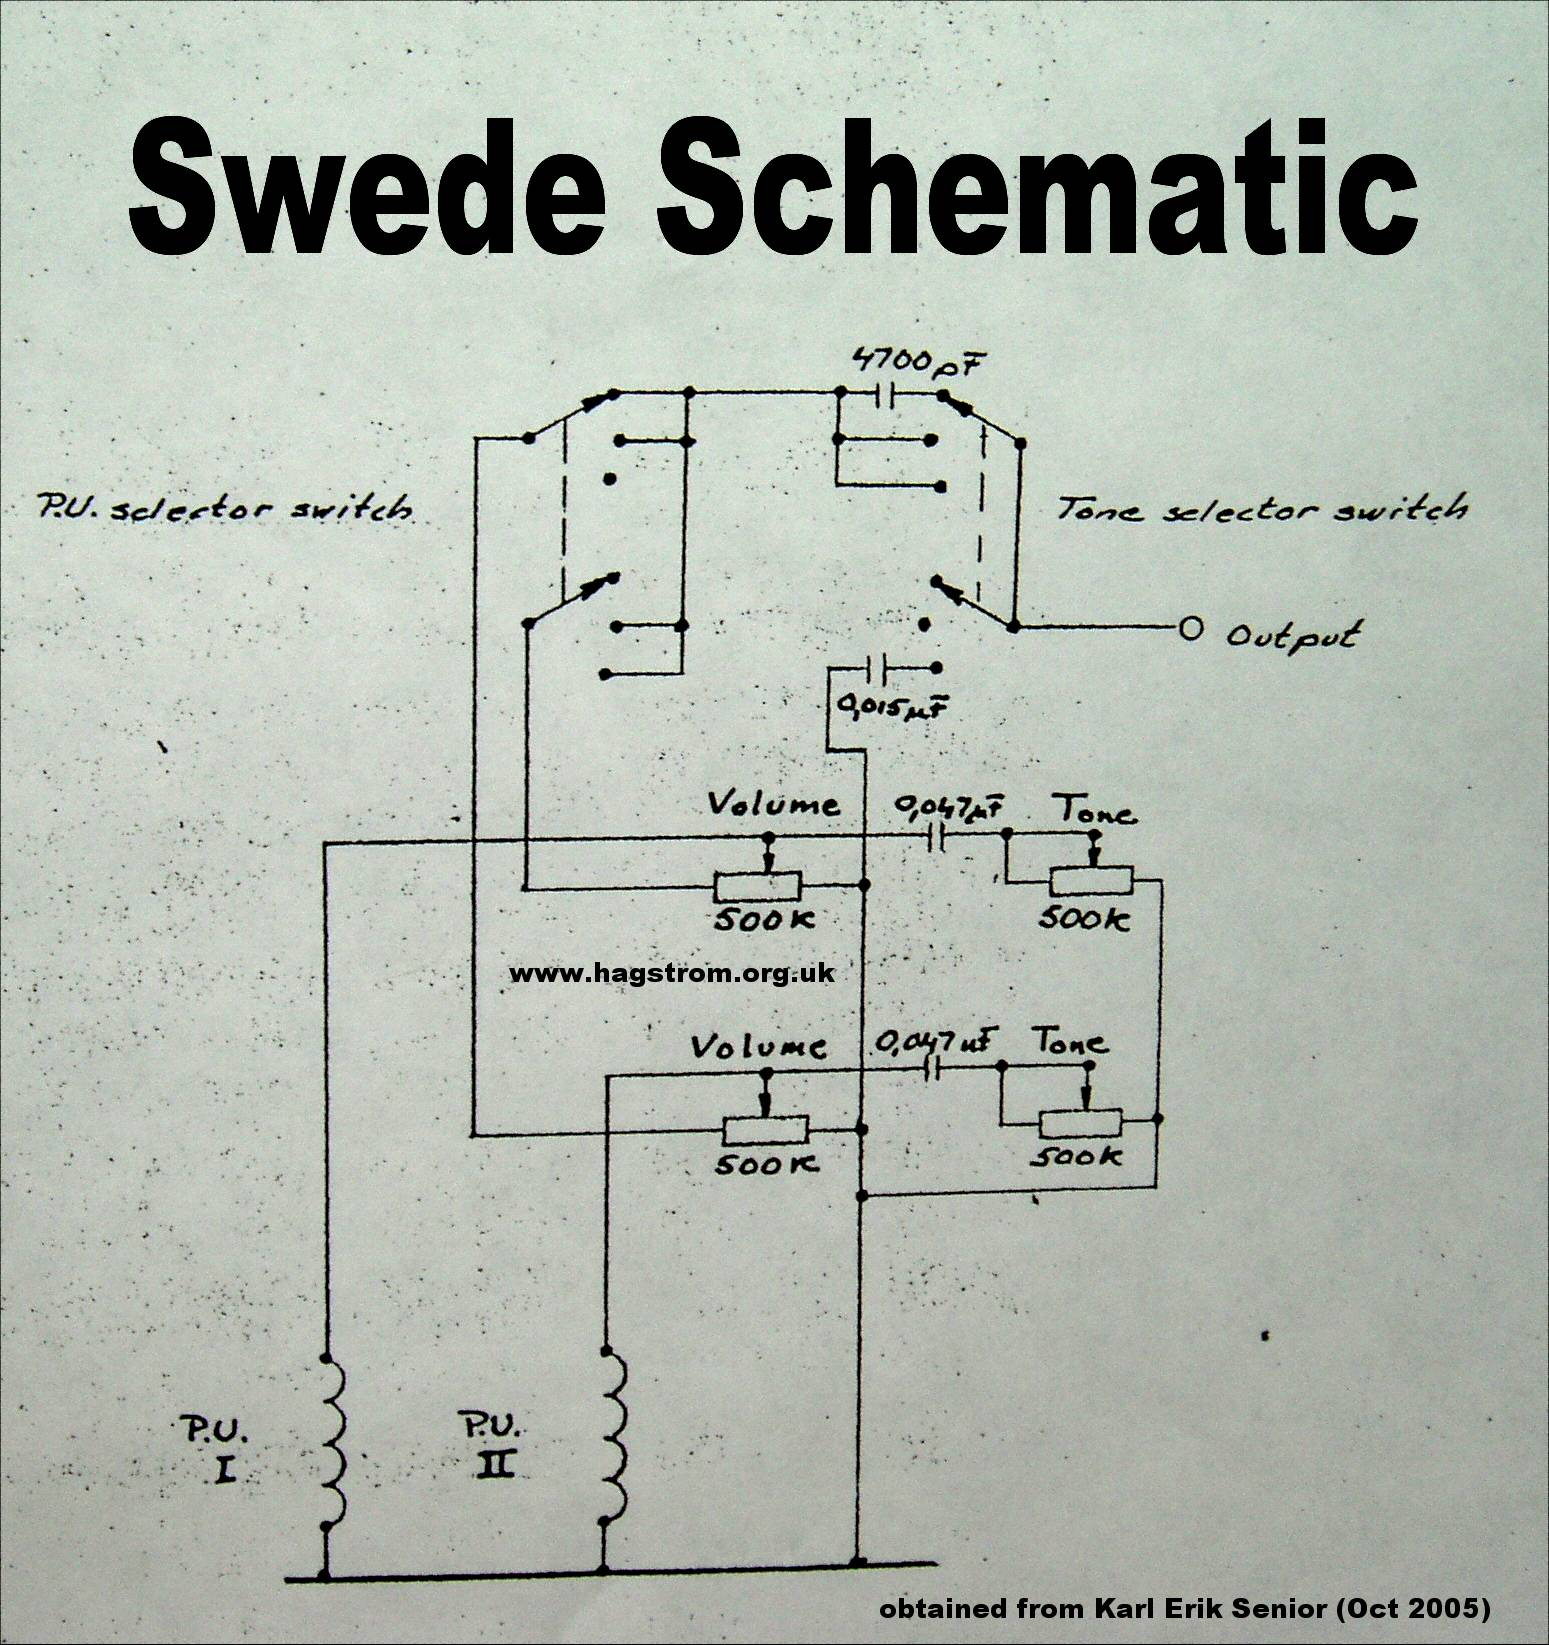 guitar wiring drawings switching system hagstrom swede2 pict rh guitarelectric eu Wiring Diagram Symbols Simple Wiring Diagrams